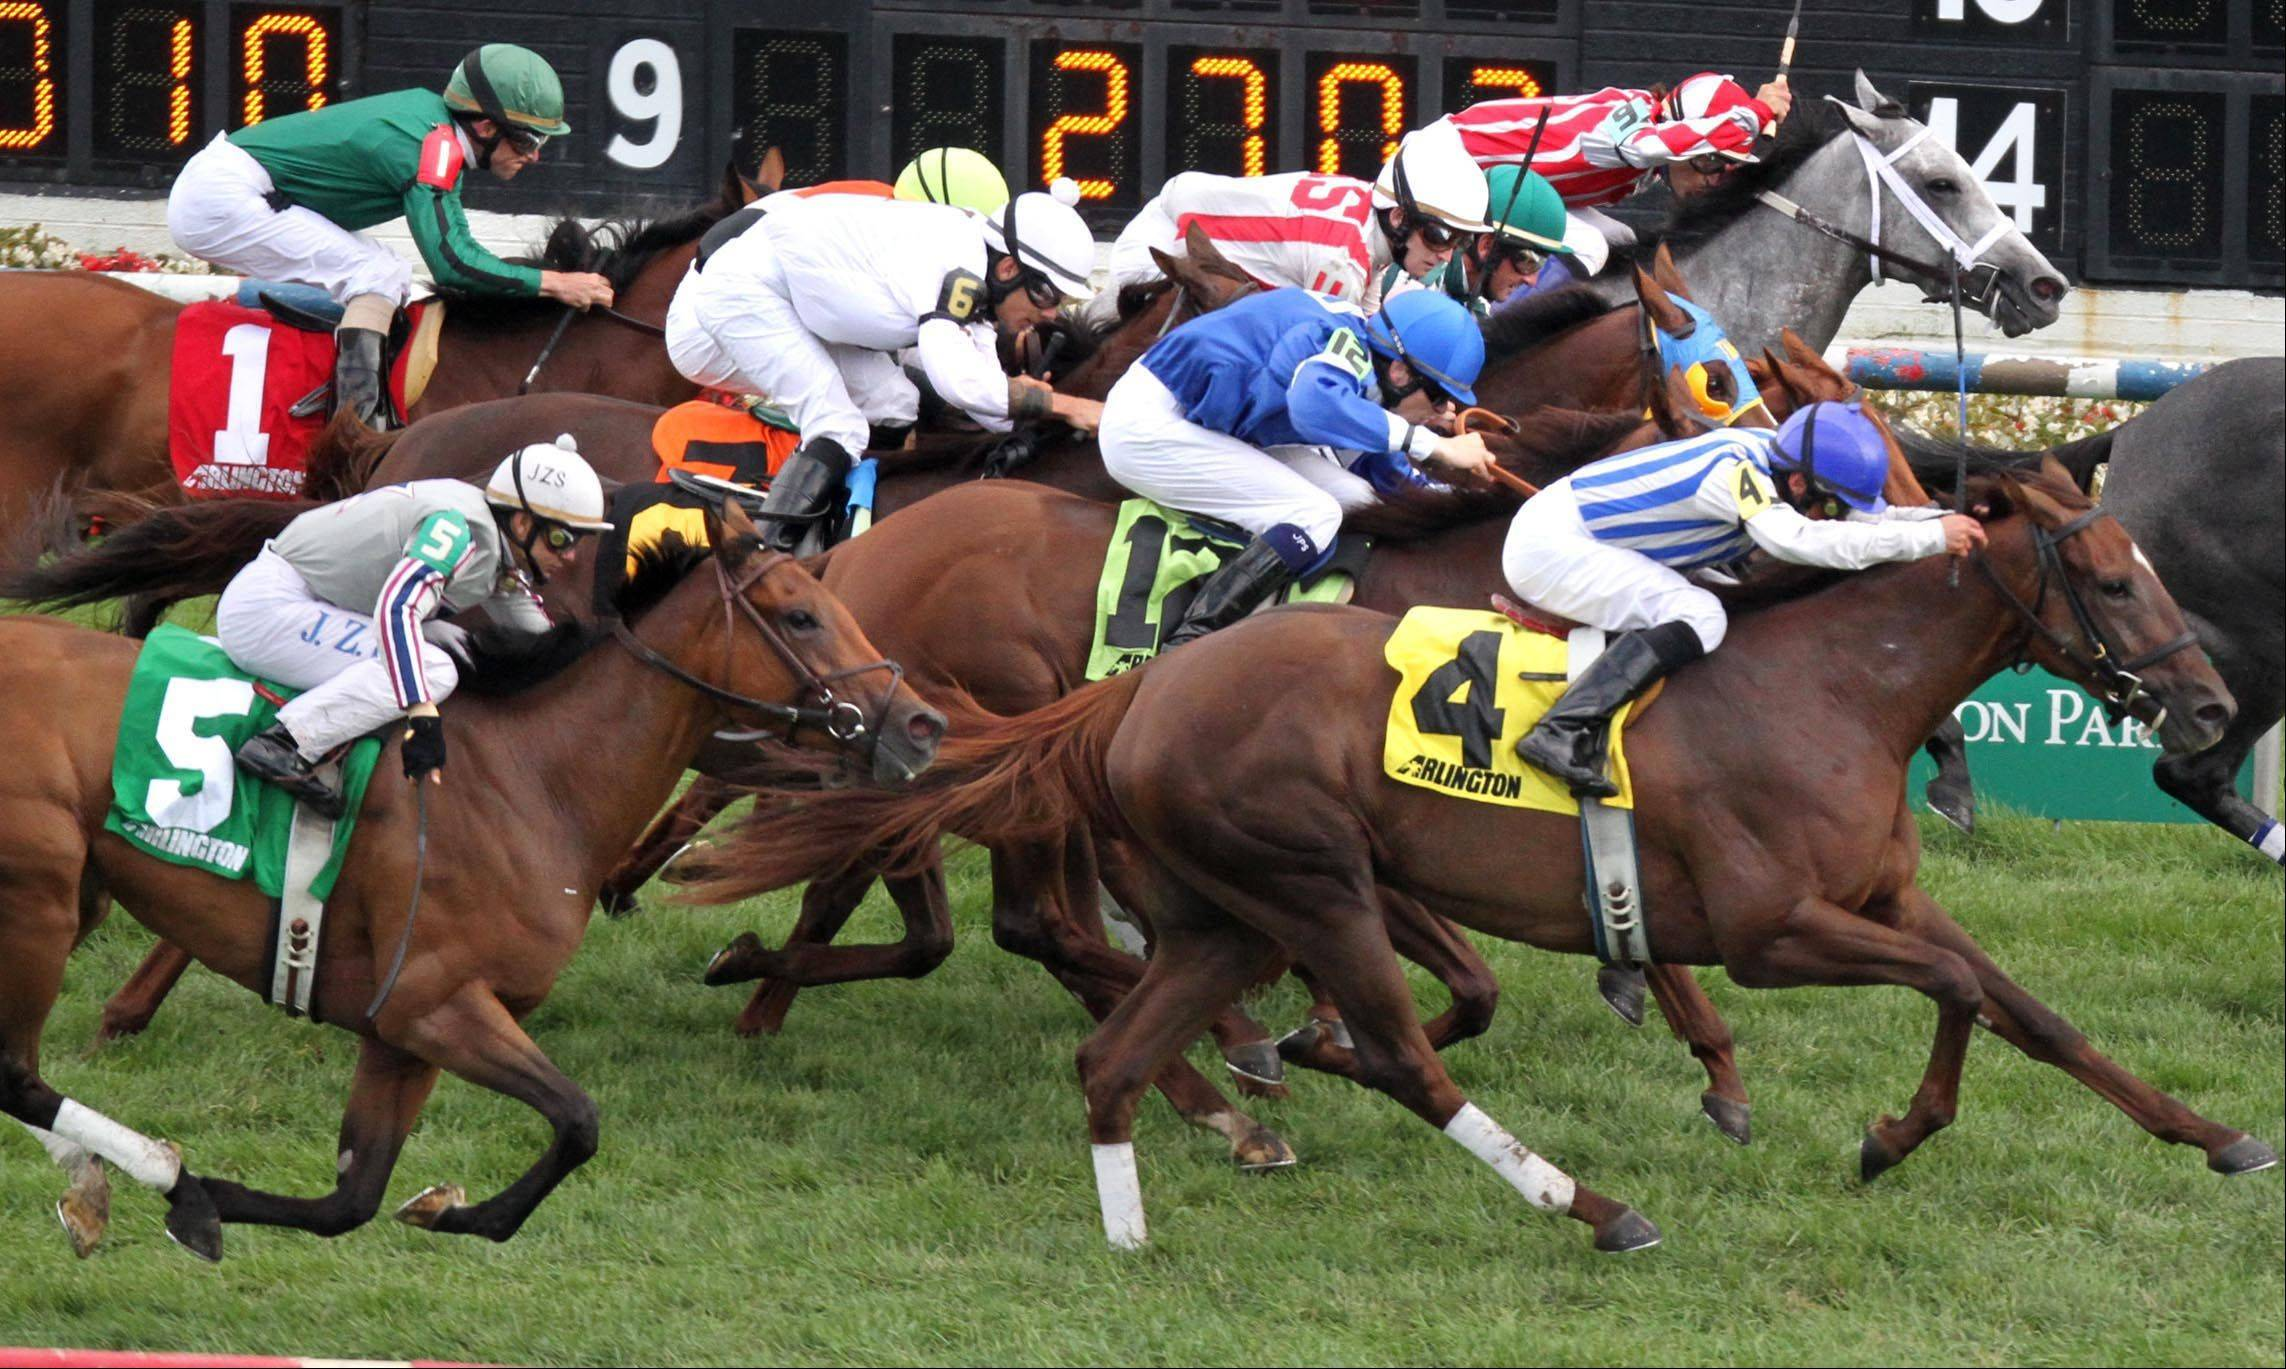 Images: The Arlington Million